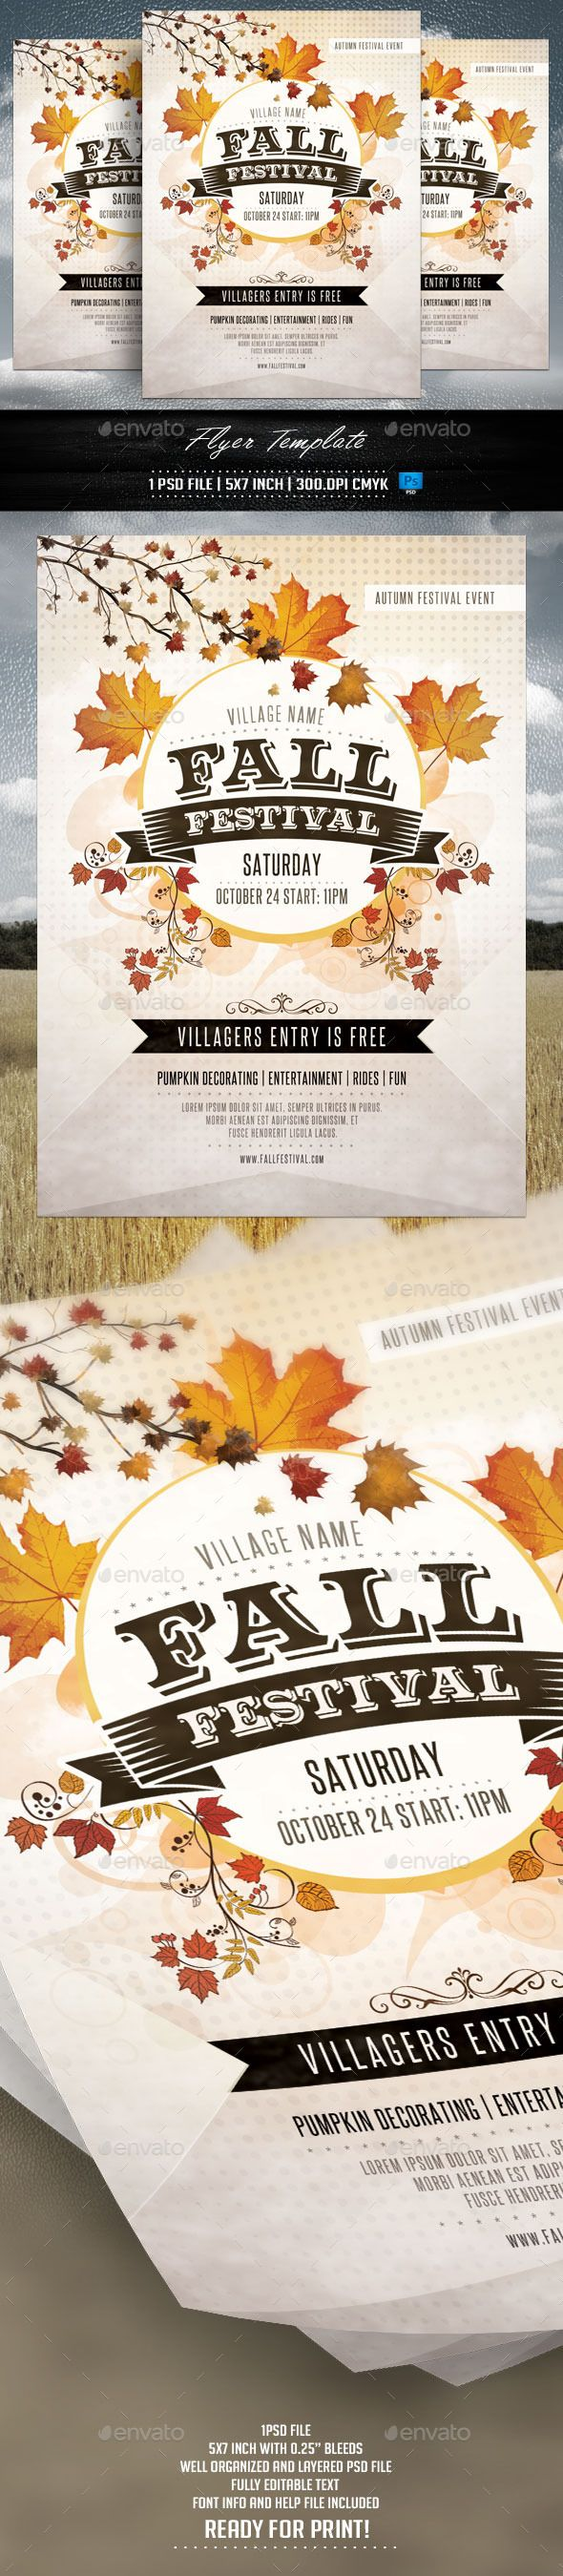 best ideas about event flyers flyer design fall festival flyer template